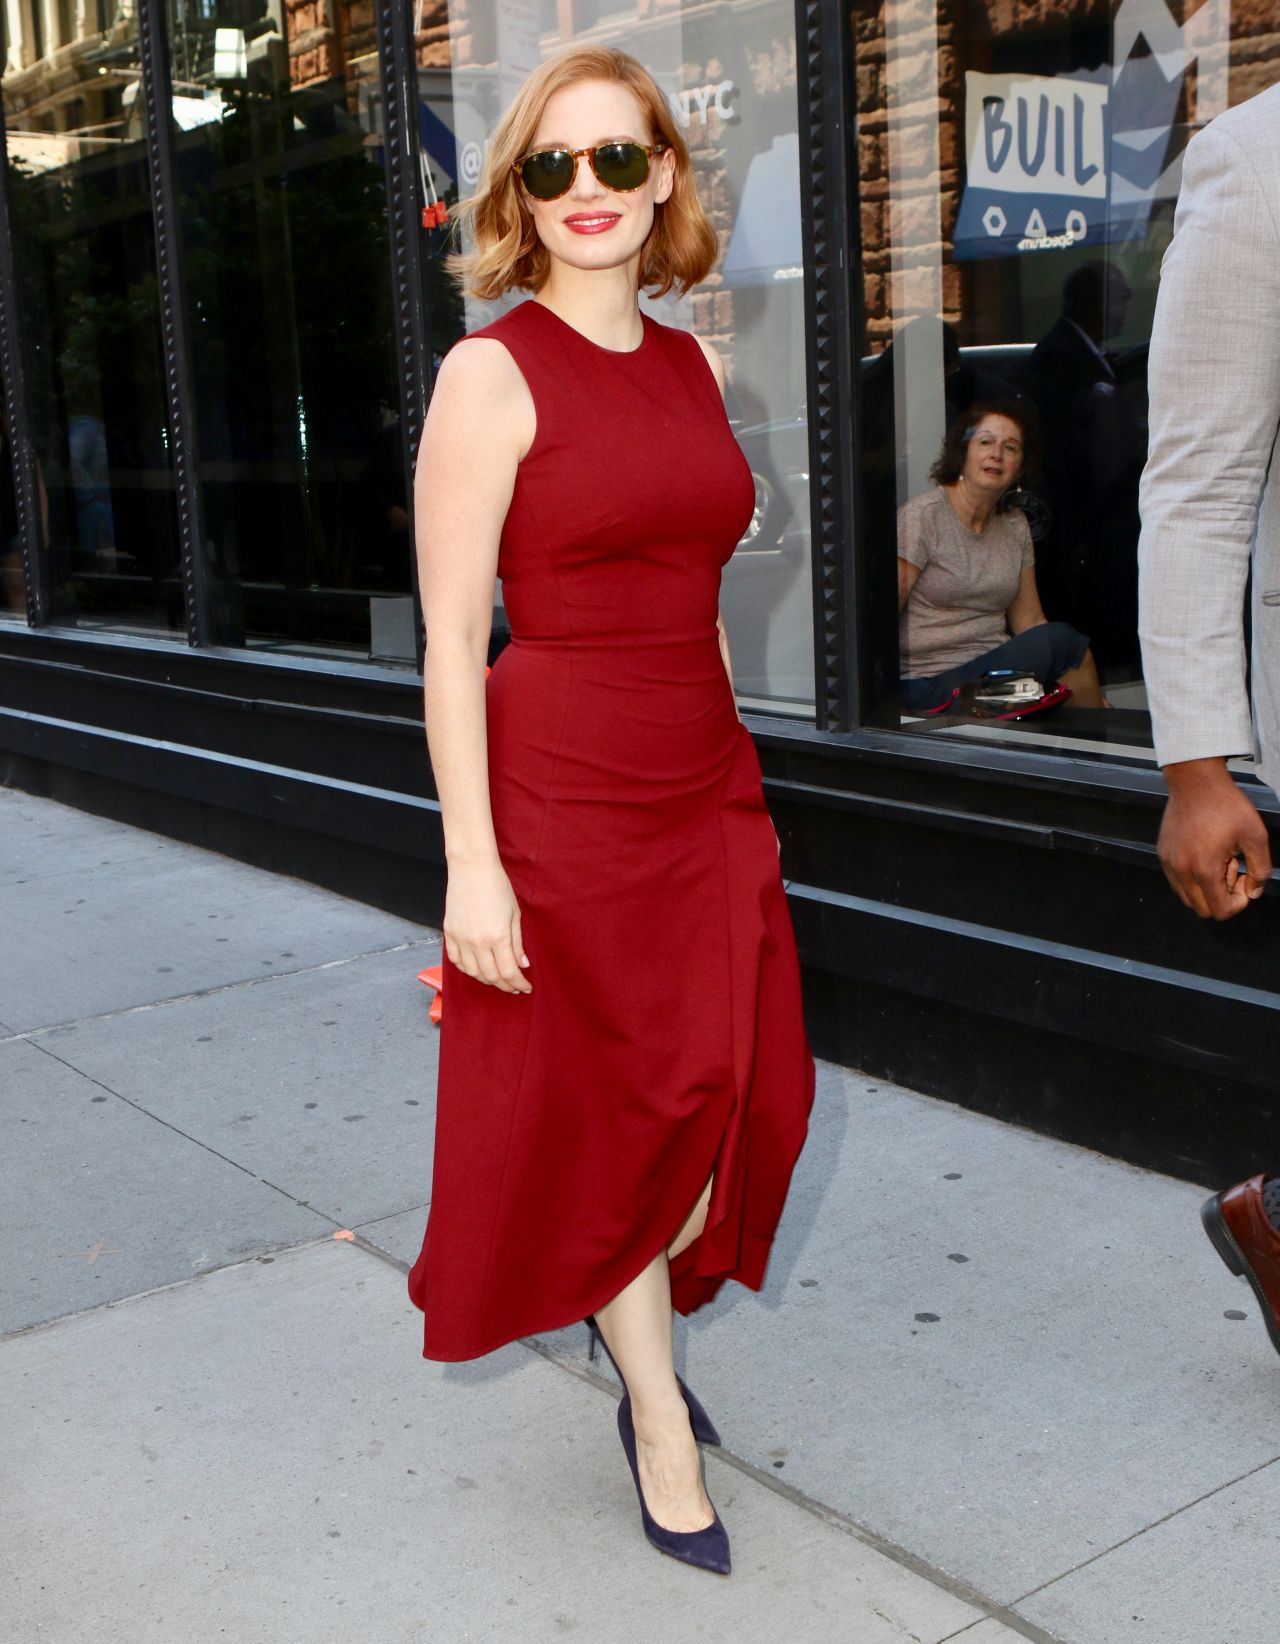 https://celebmafia.com/wp-content/uploads/2018/06/jessica-chastain-arriving-to-appear-on-the-view-and-buid-series-in-nyc-06-26-2018-8.jpg